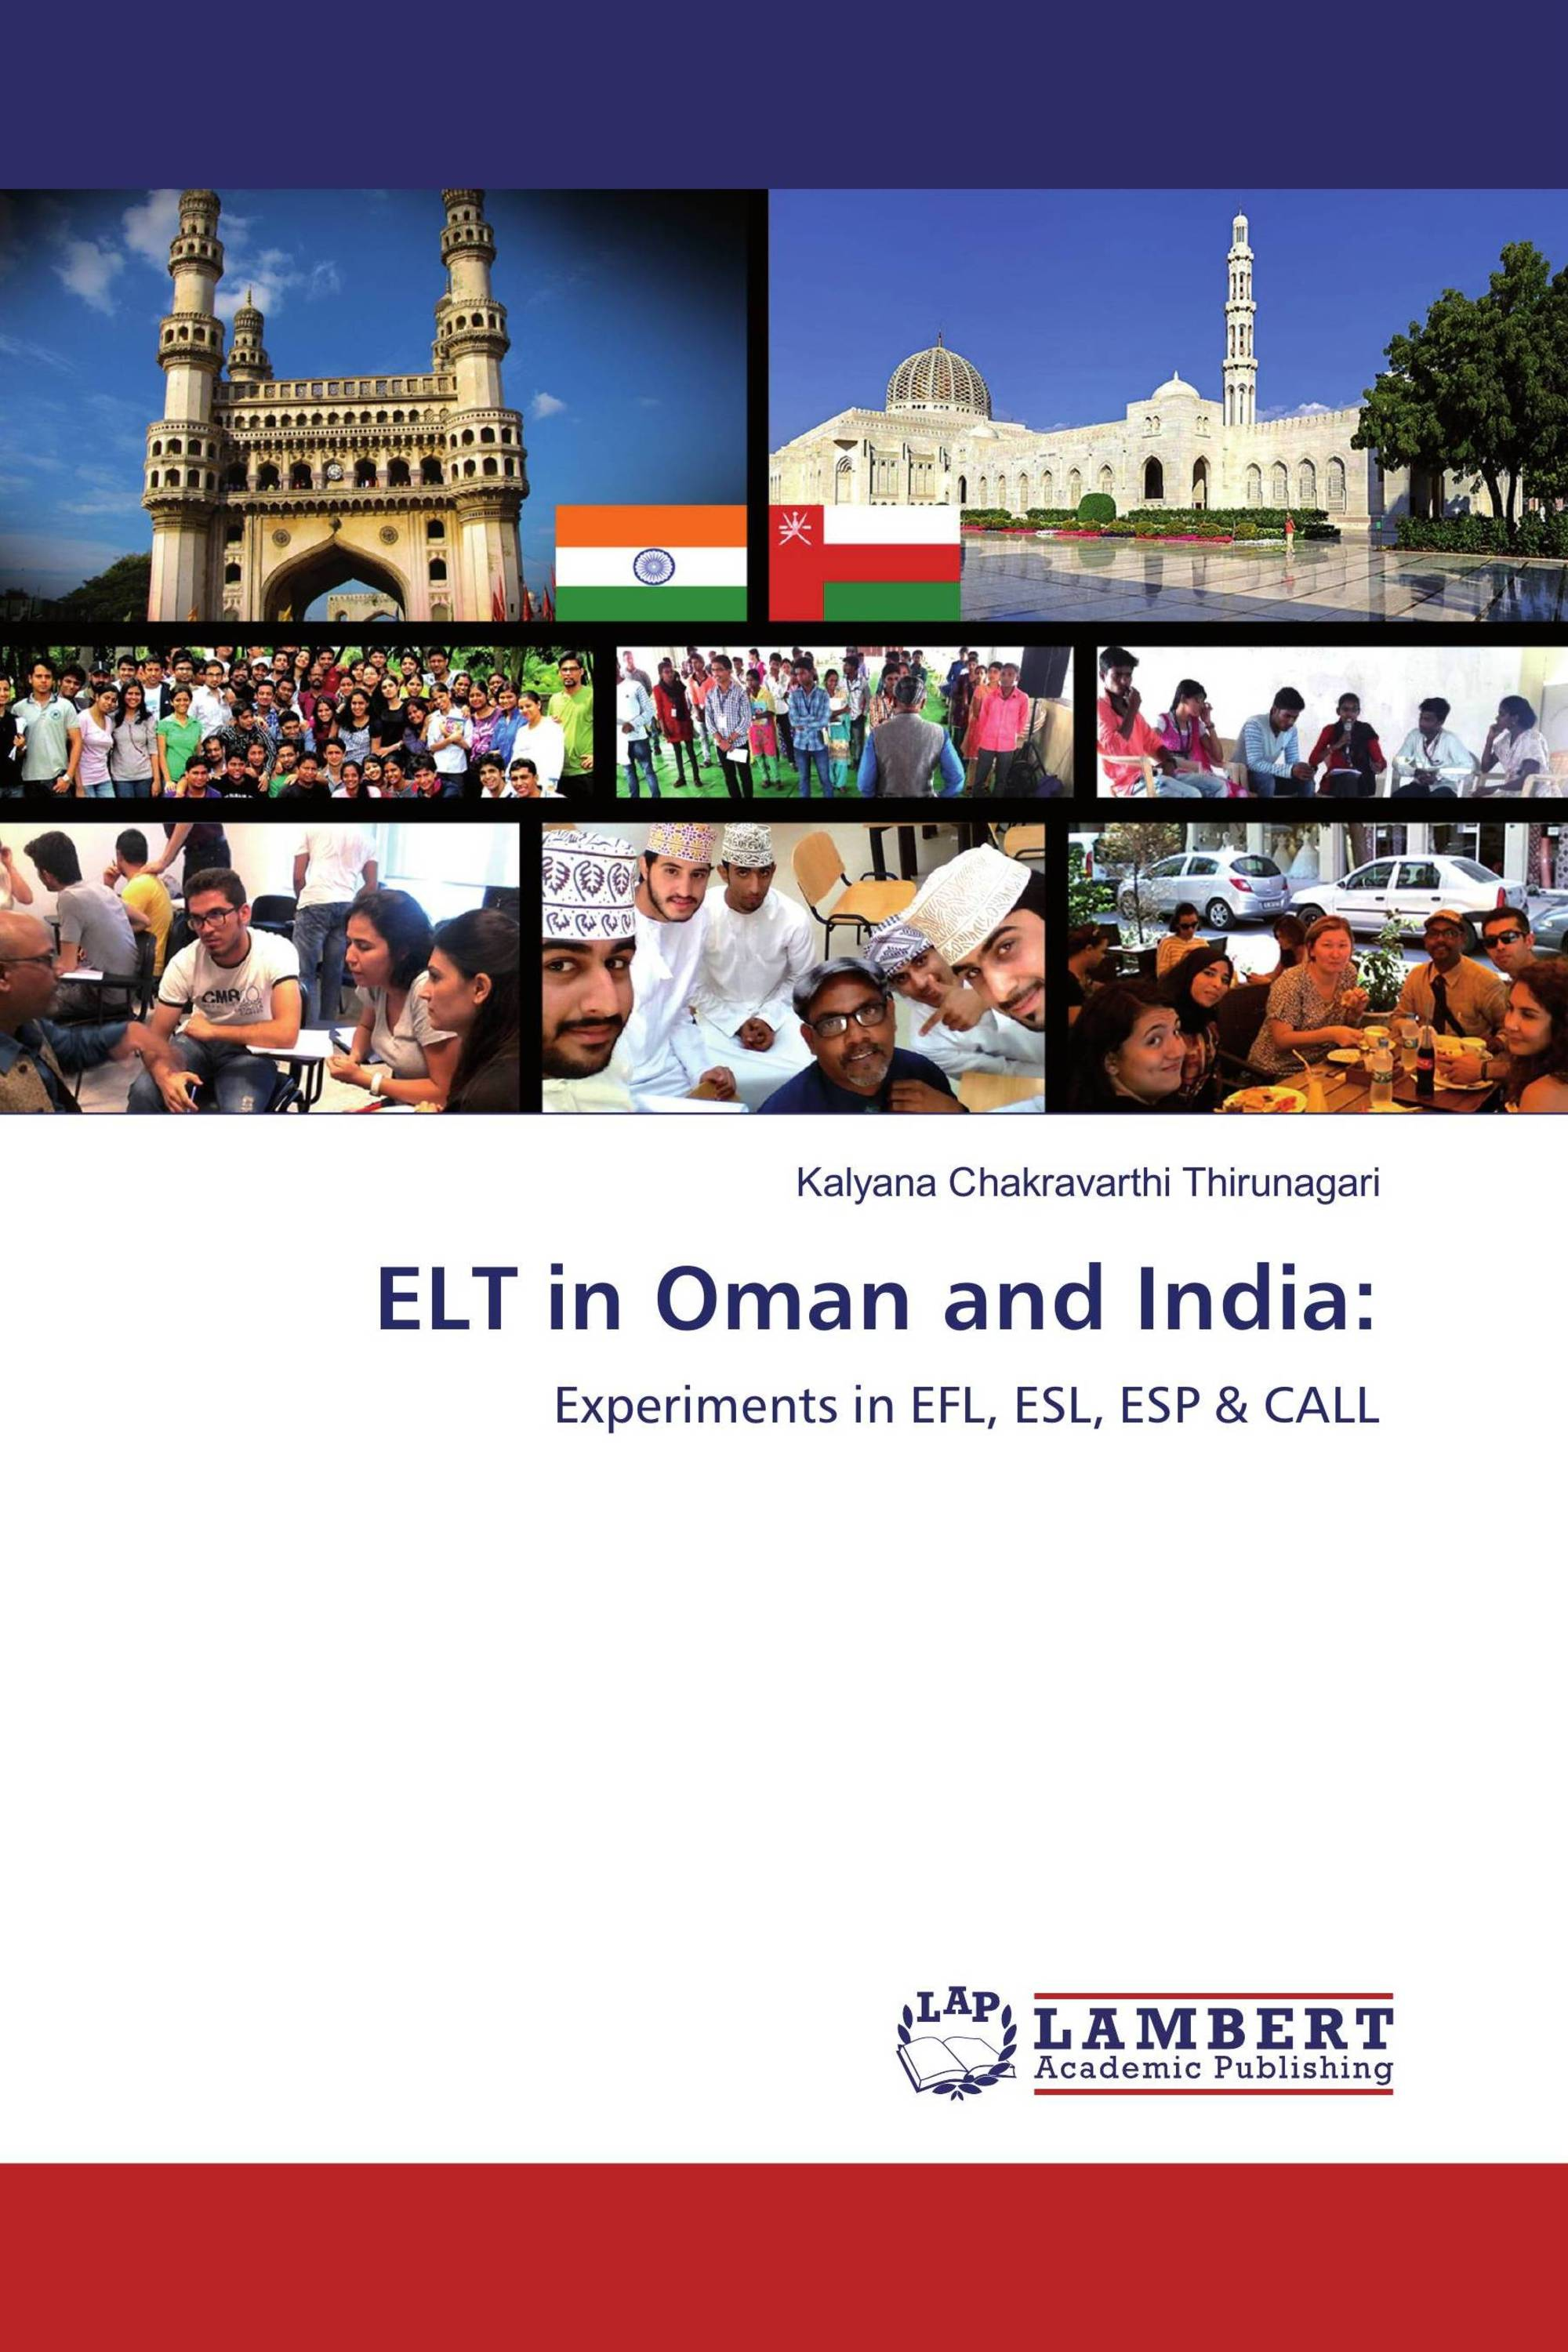 ELT in Oman and India: